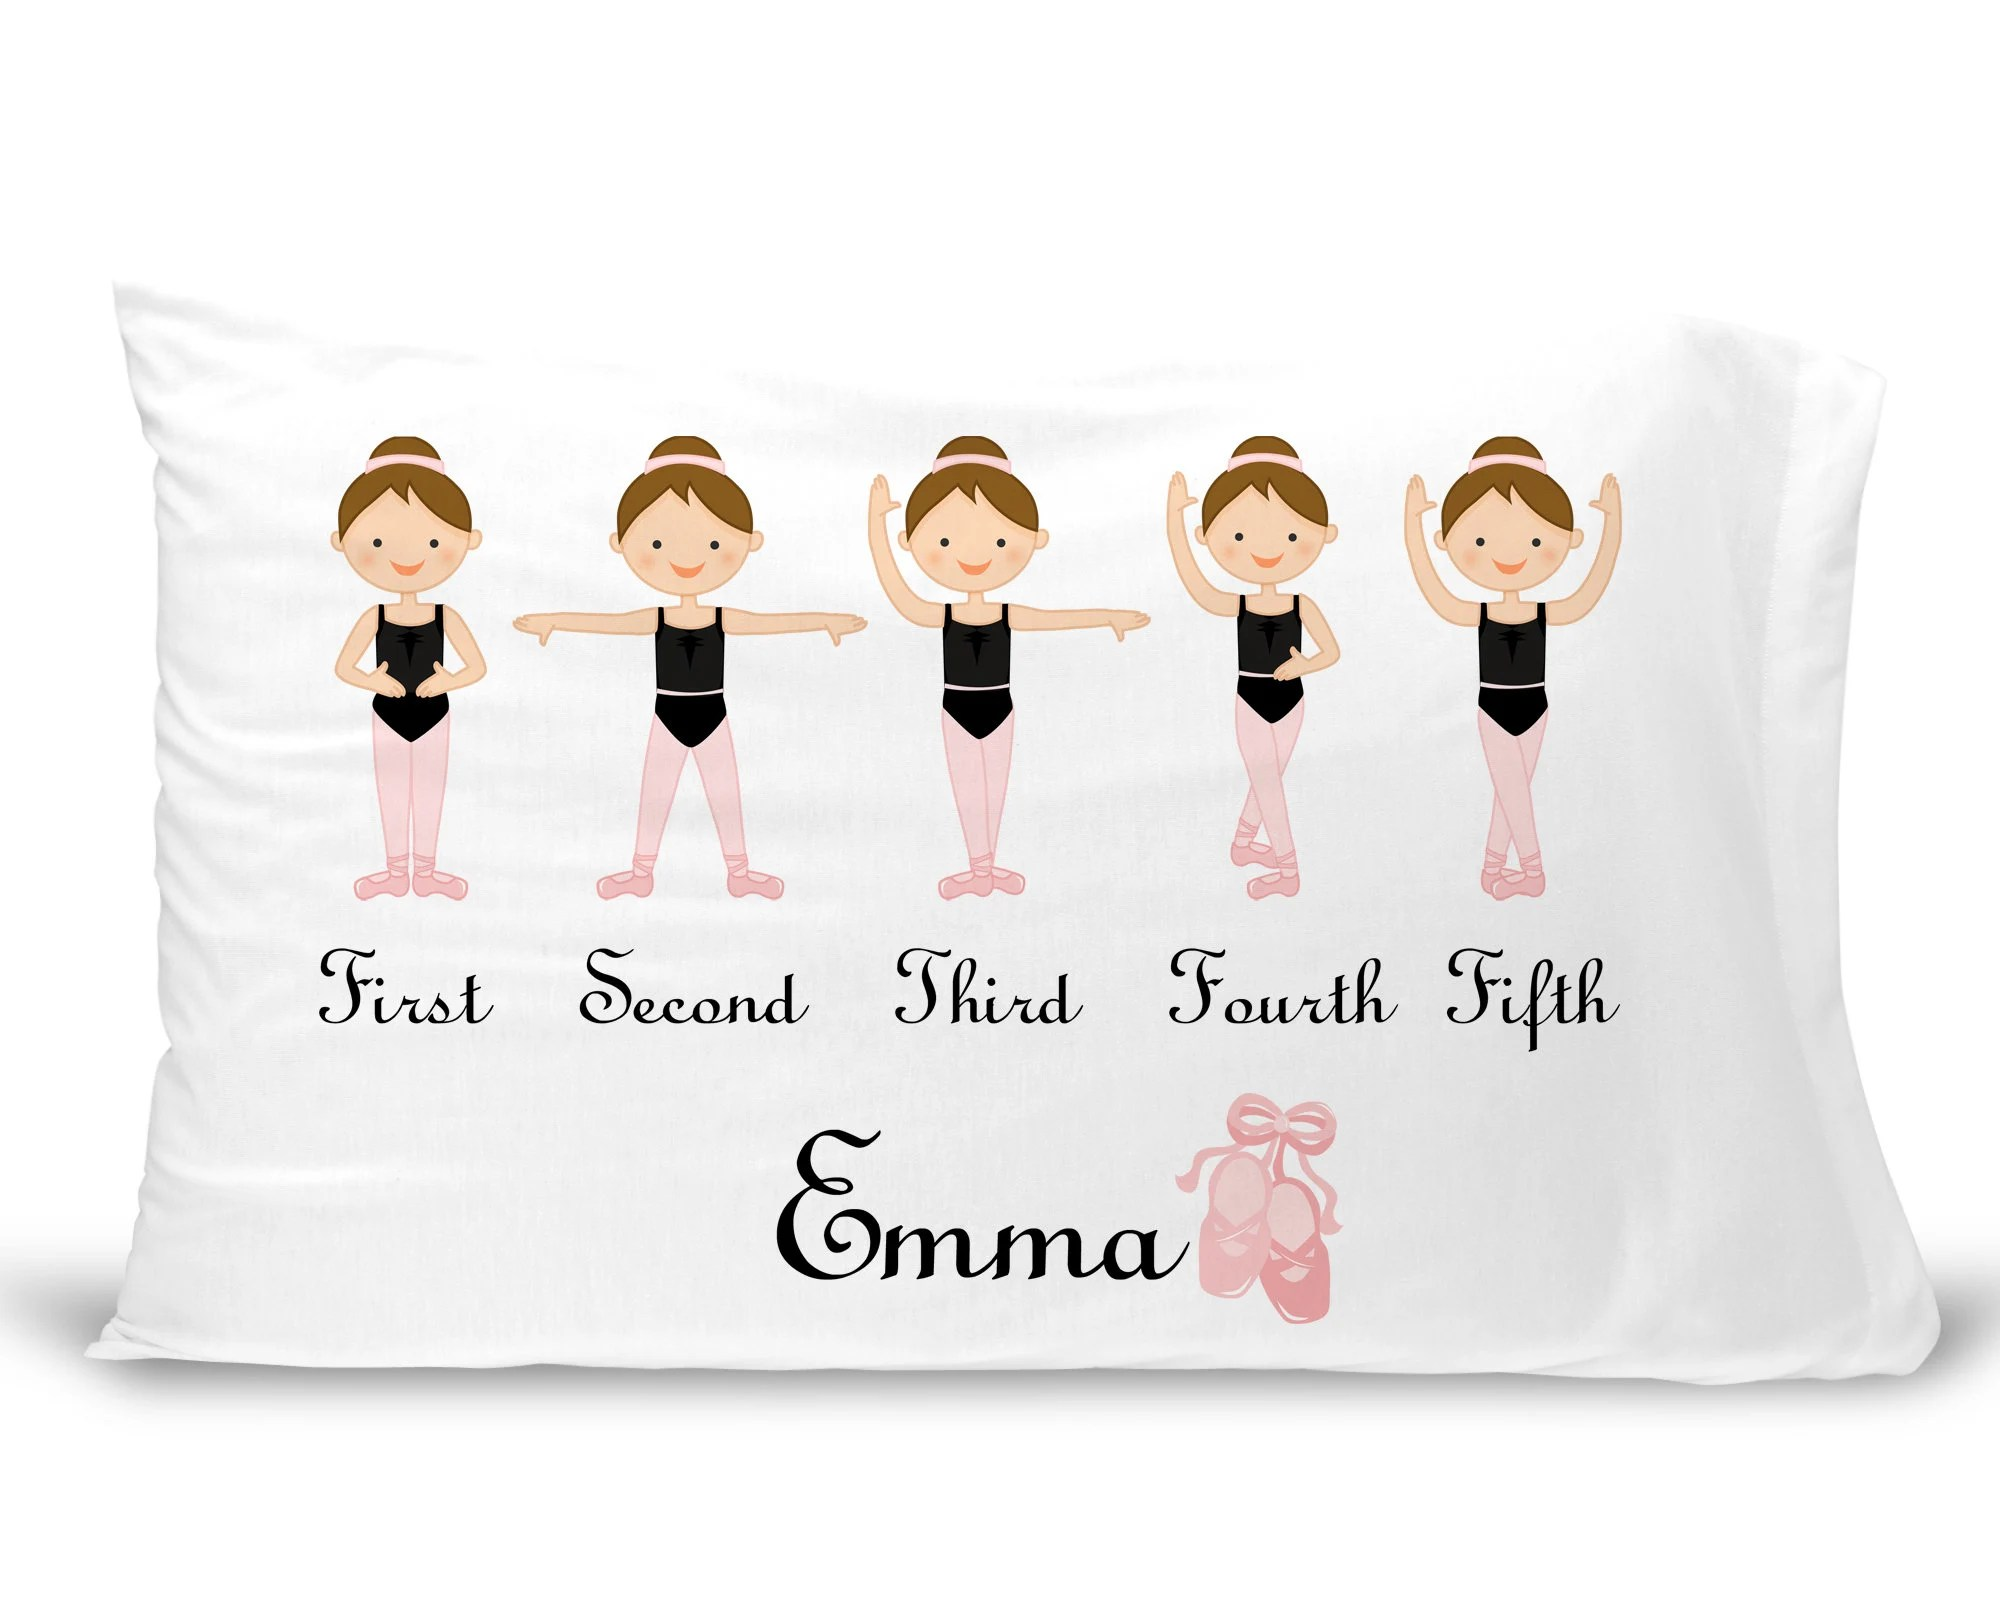 Slip Pillowcase Personalized Kids Pillowcase Ballerina Pillowcase For Girls Ballet Pillow Case Custom Ballerina Pillow Slip